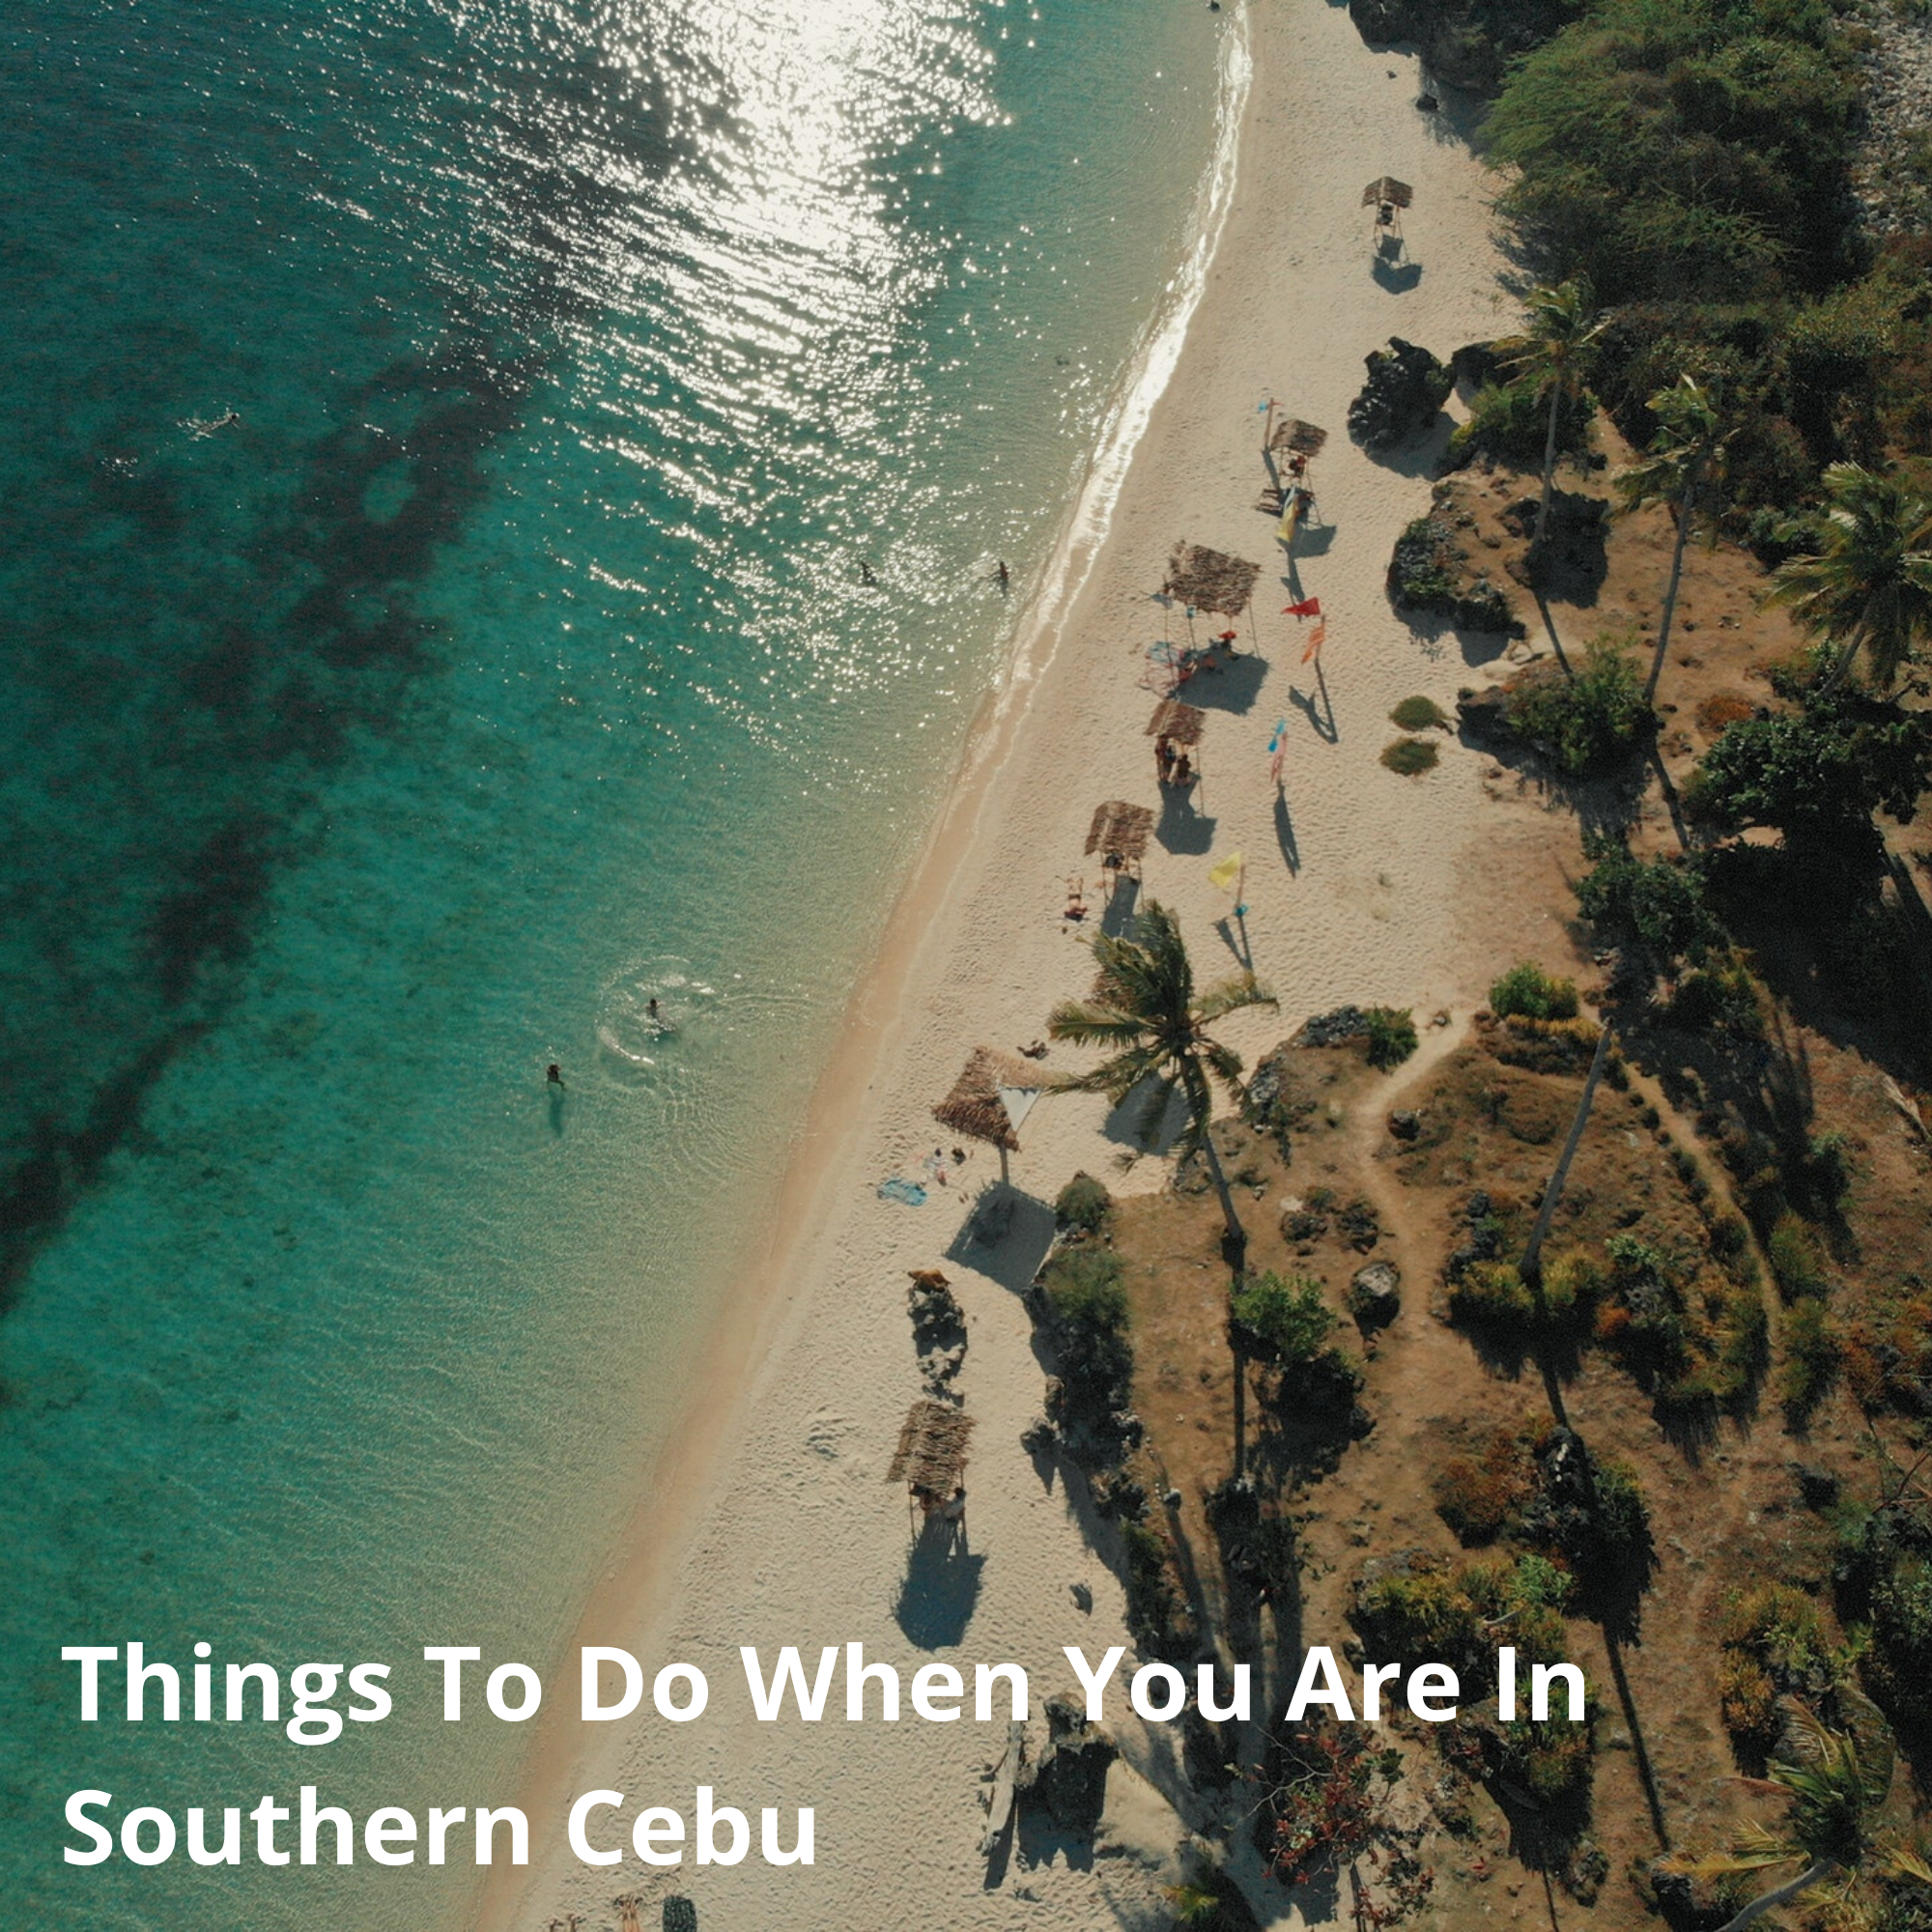 Things To Do When You Are In Southern Cebu